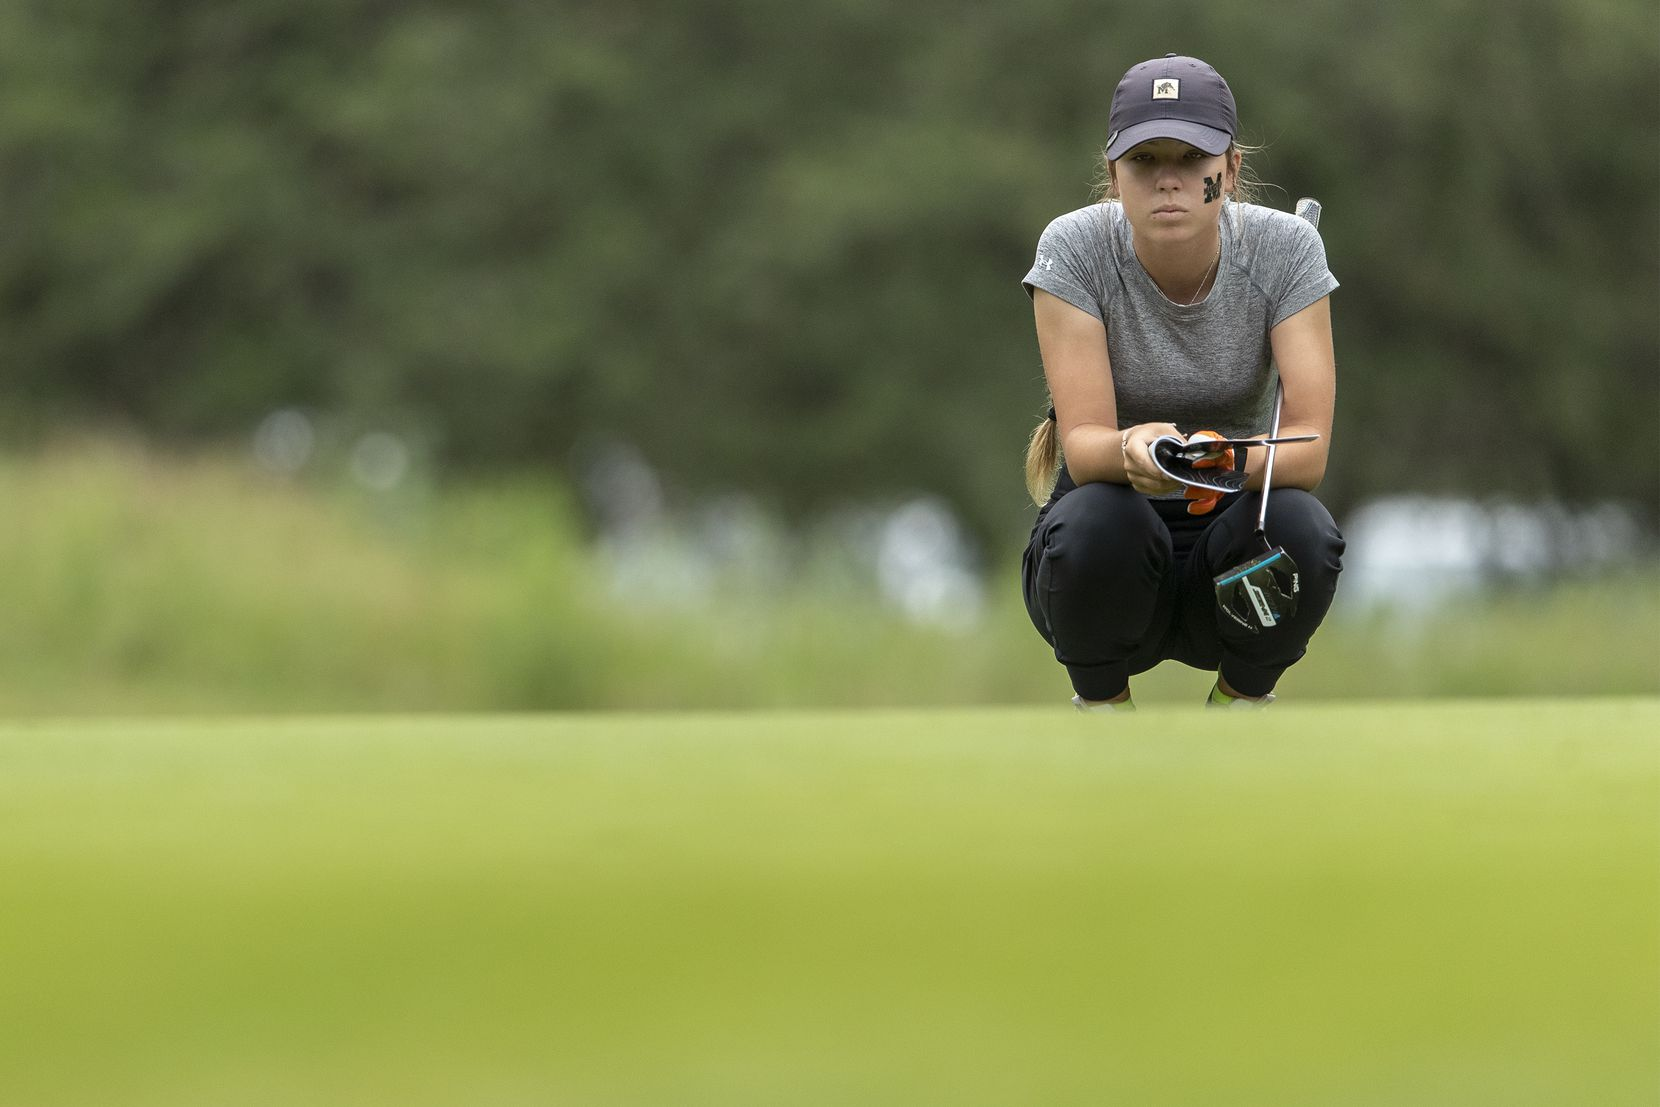 Mansfield's Abby Hirtzel studies her shot on the 1st green during the final day of the UIL Class 5A girls golf tournament in Georgetown, Tuesday, May 11, 2021. (Stephen Spillman/Special Contributor)